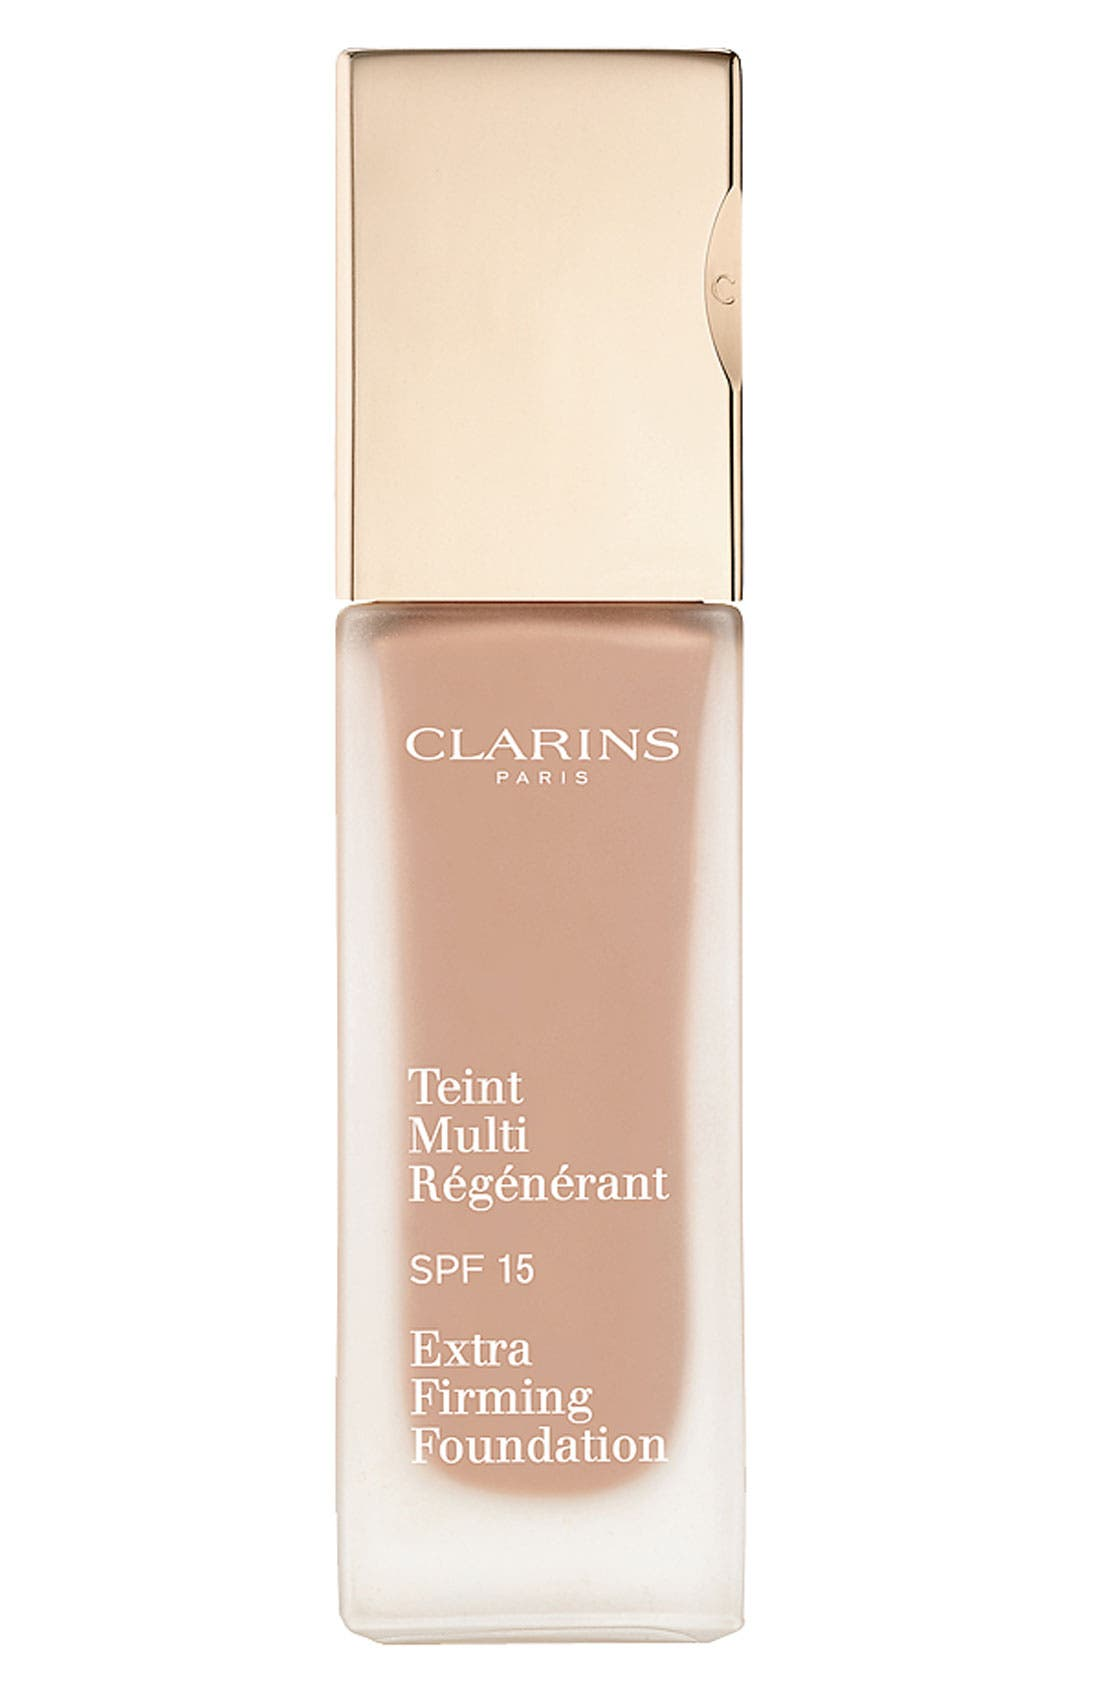 Clarins 'Extra-Firming' Foundation SPF 15